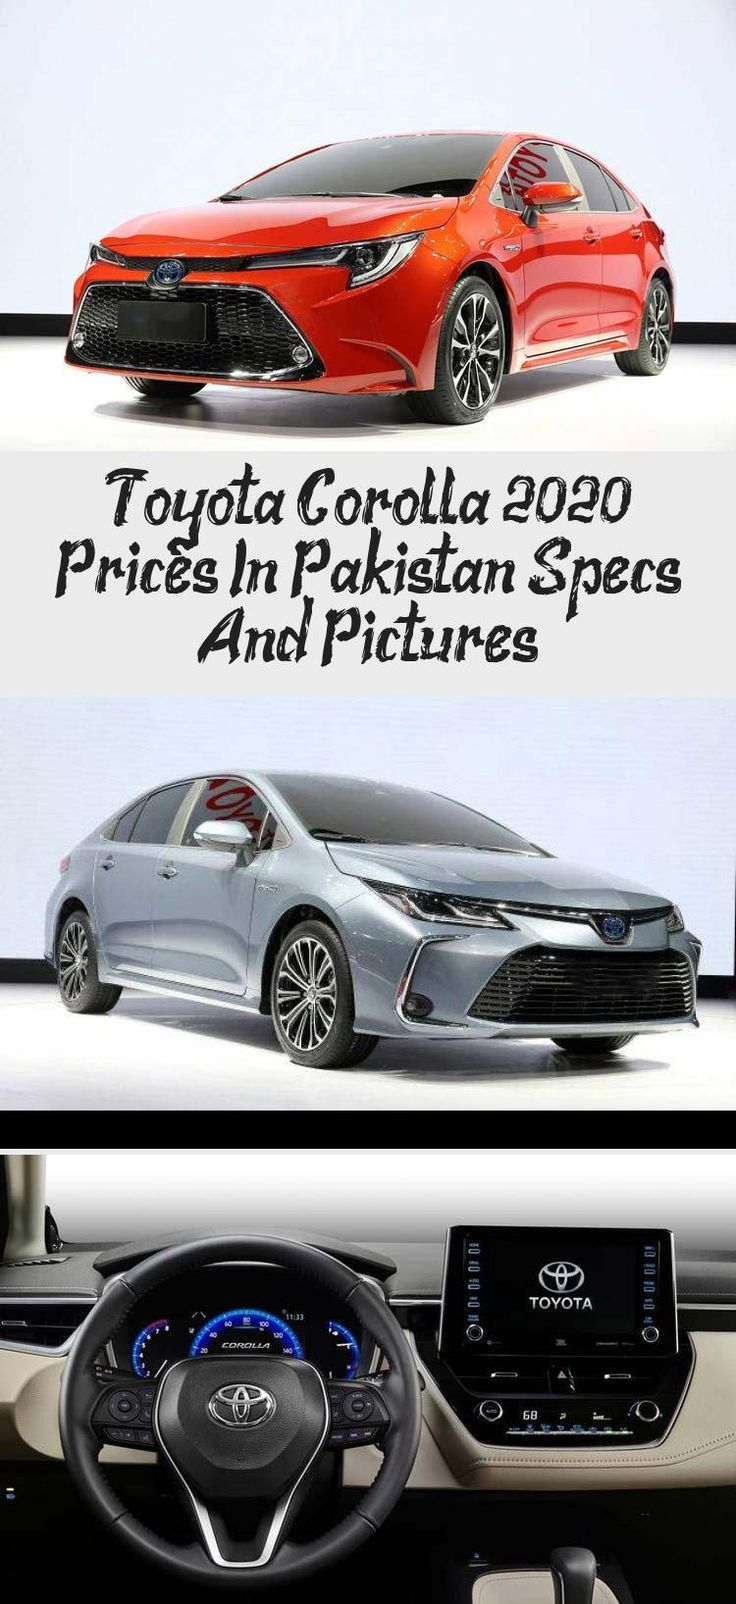 Toyota Corolla 2020 Prices In Pakistan, Specs And Pictures